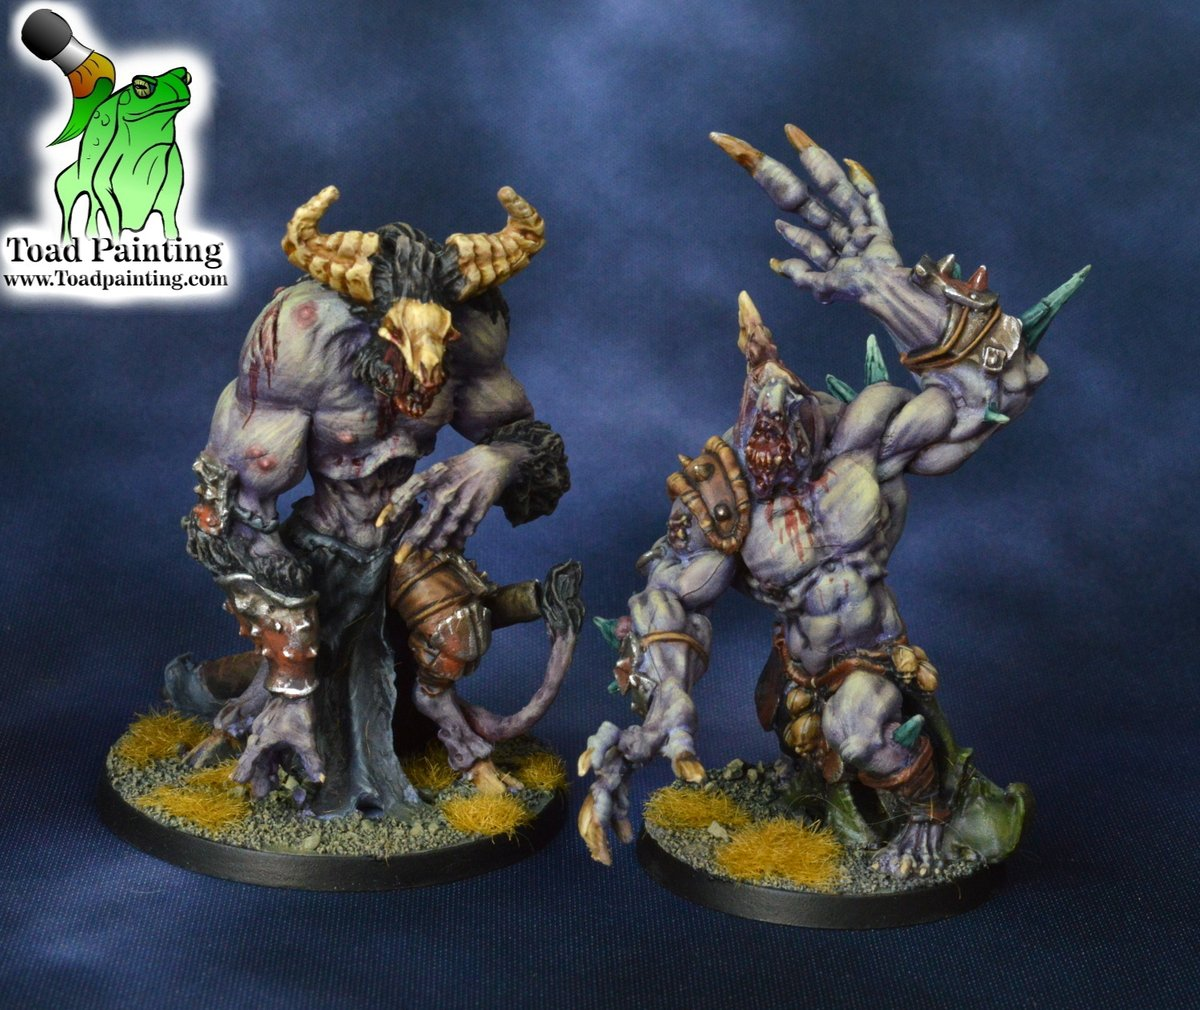 Here are some of the finished monsters from latest commission. The Vault Warden and Abomination from Zombicide: Green Horde  #minipainting #miniatures #miniaturepainting #Cmongames #zombicide  #greenhorde #tabletop #tabletopgaming https://t.co/awIFUHWdoN